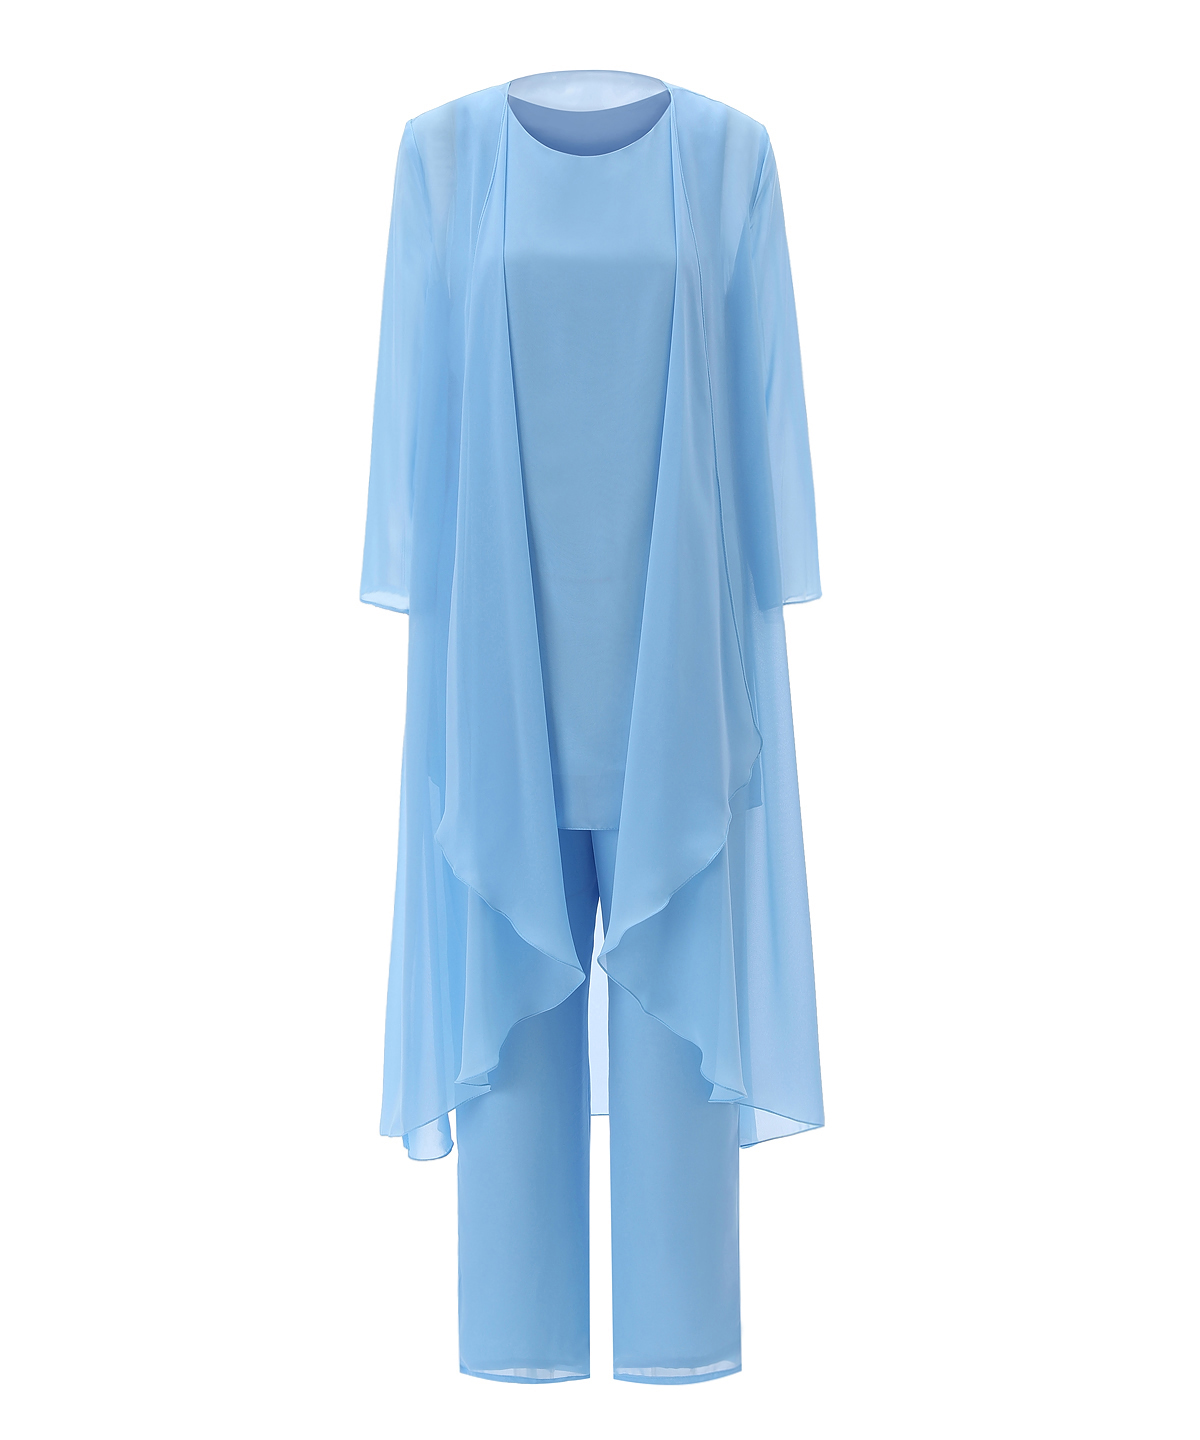 Jacket Suit Outfit Bride Dress Chiffon Simple Long-Sleeves Tea-Length Womens 3pieces title=